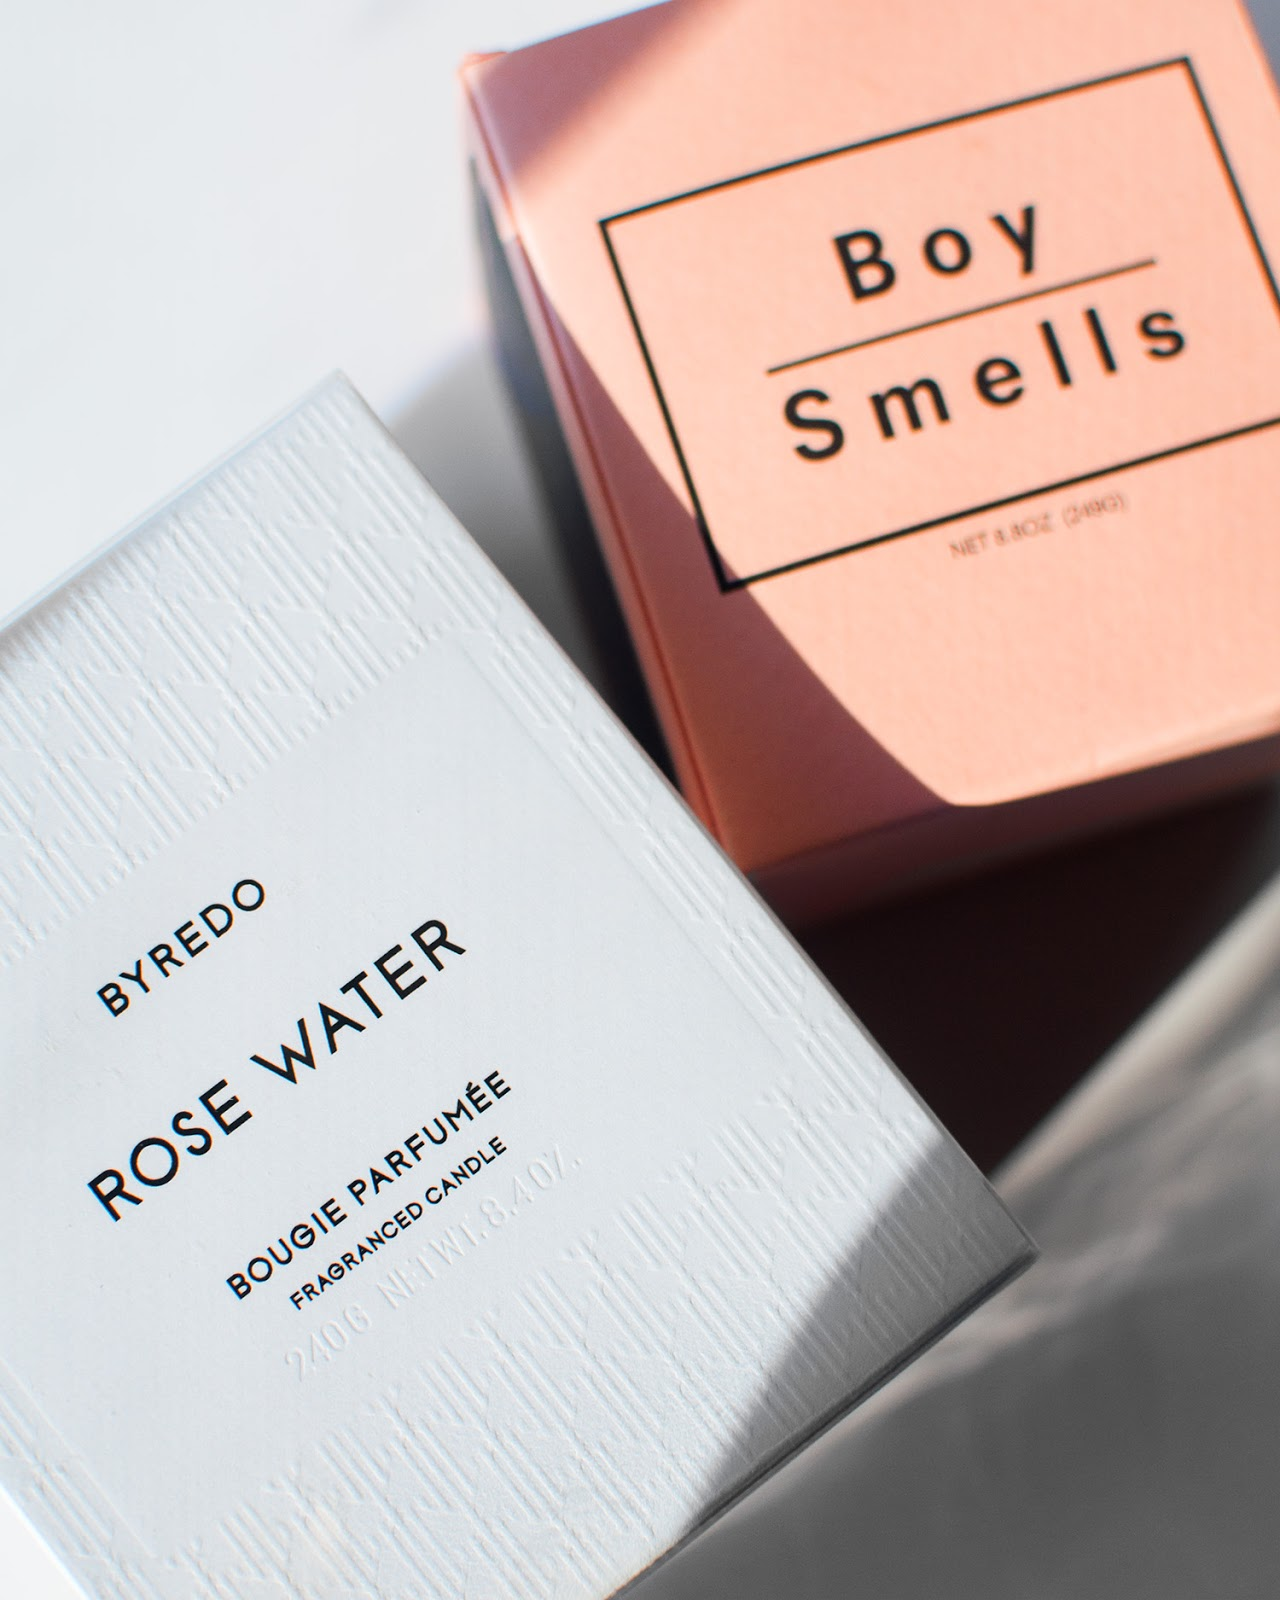 boy smells candle, byredo holiday candle 2017 , byredo rose water, boy smells candle